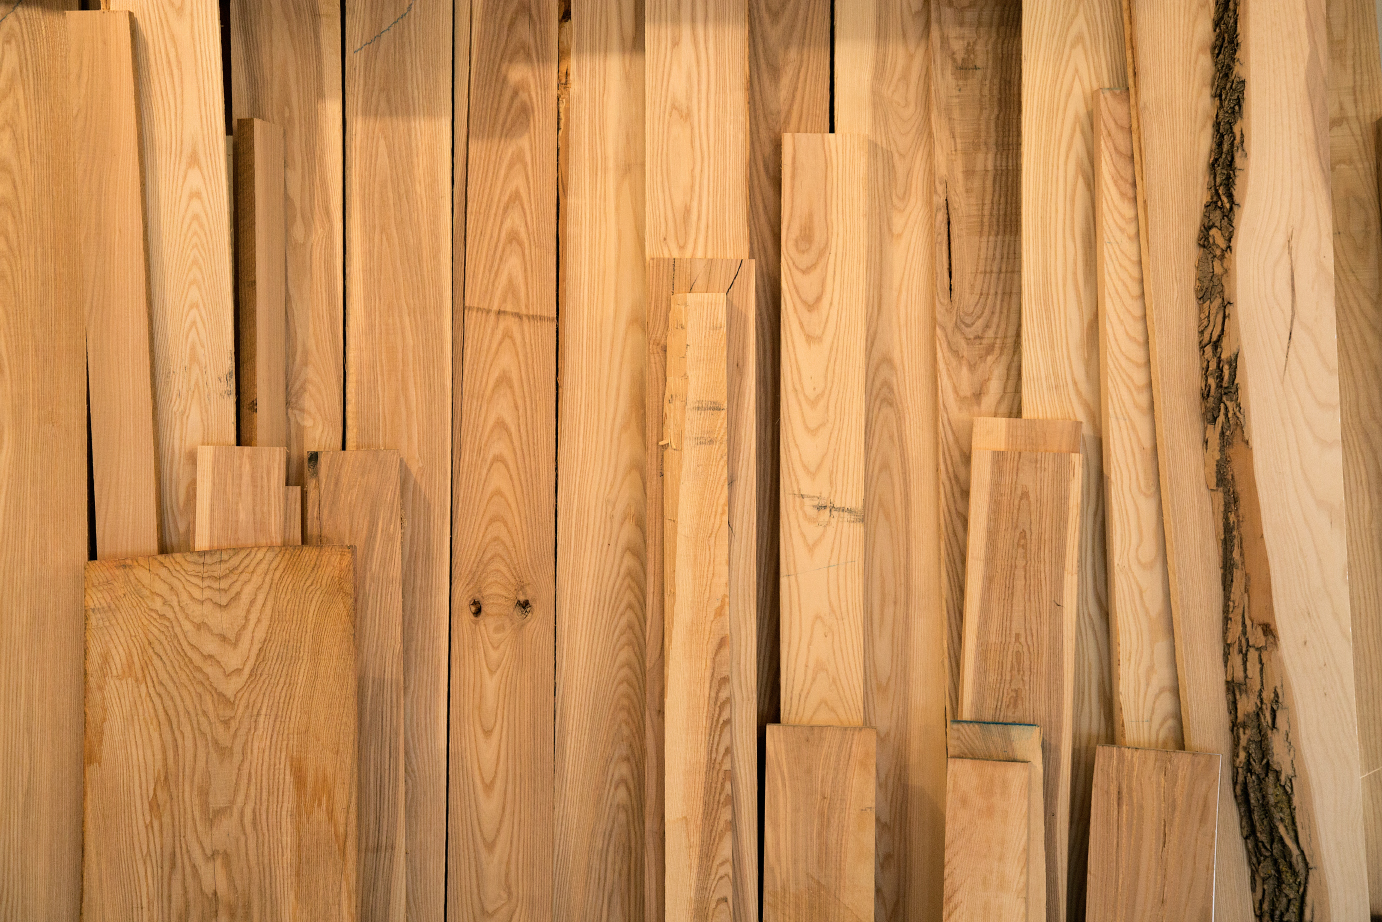 Solid ash wood